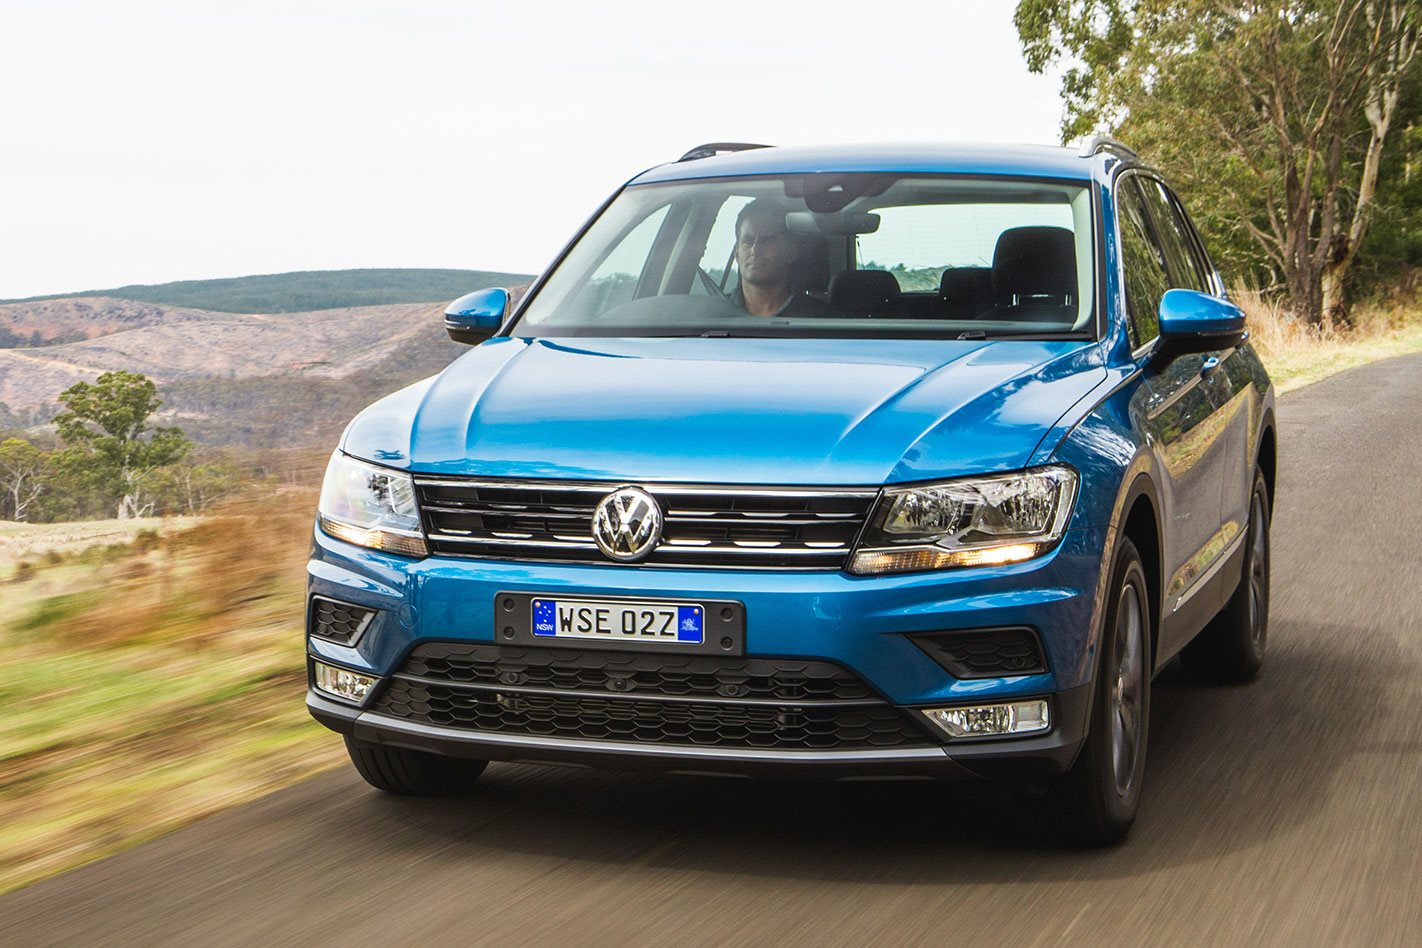 volkswagen tiguan 2019 review price and features. Black Bedroom Furniture Sets. Home Design Ideas